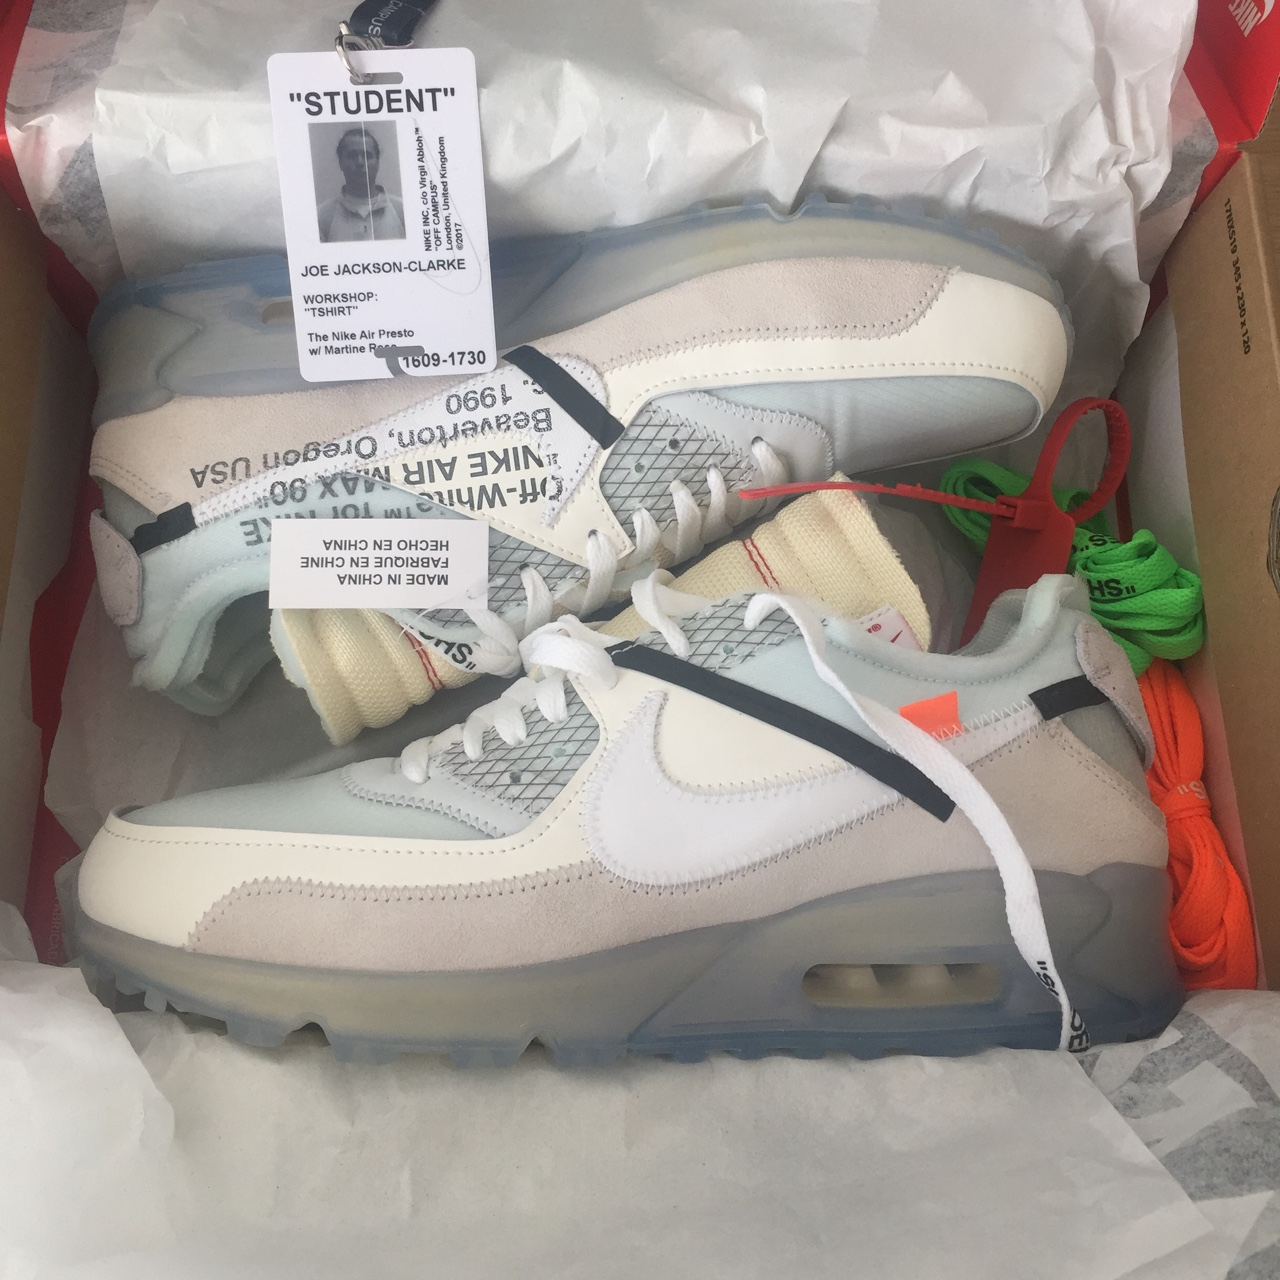 Nike Air Max Thea size 9 Picked them up from a Depop